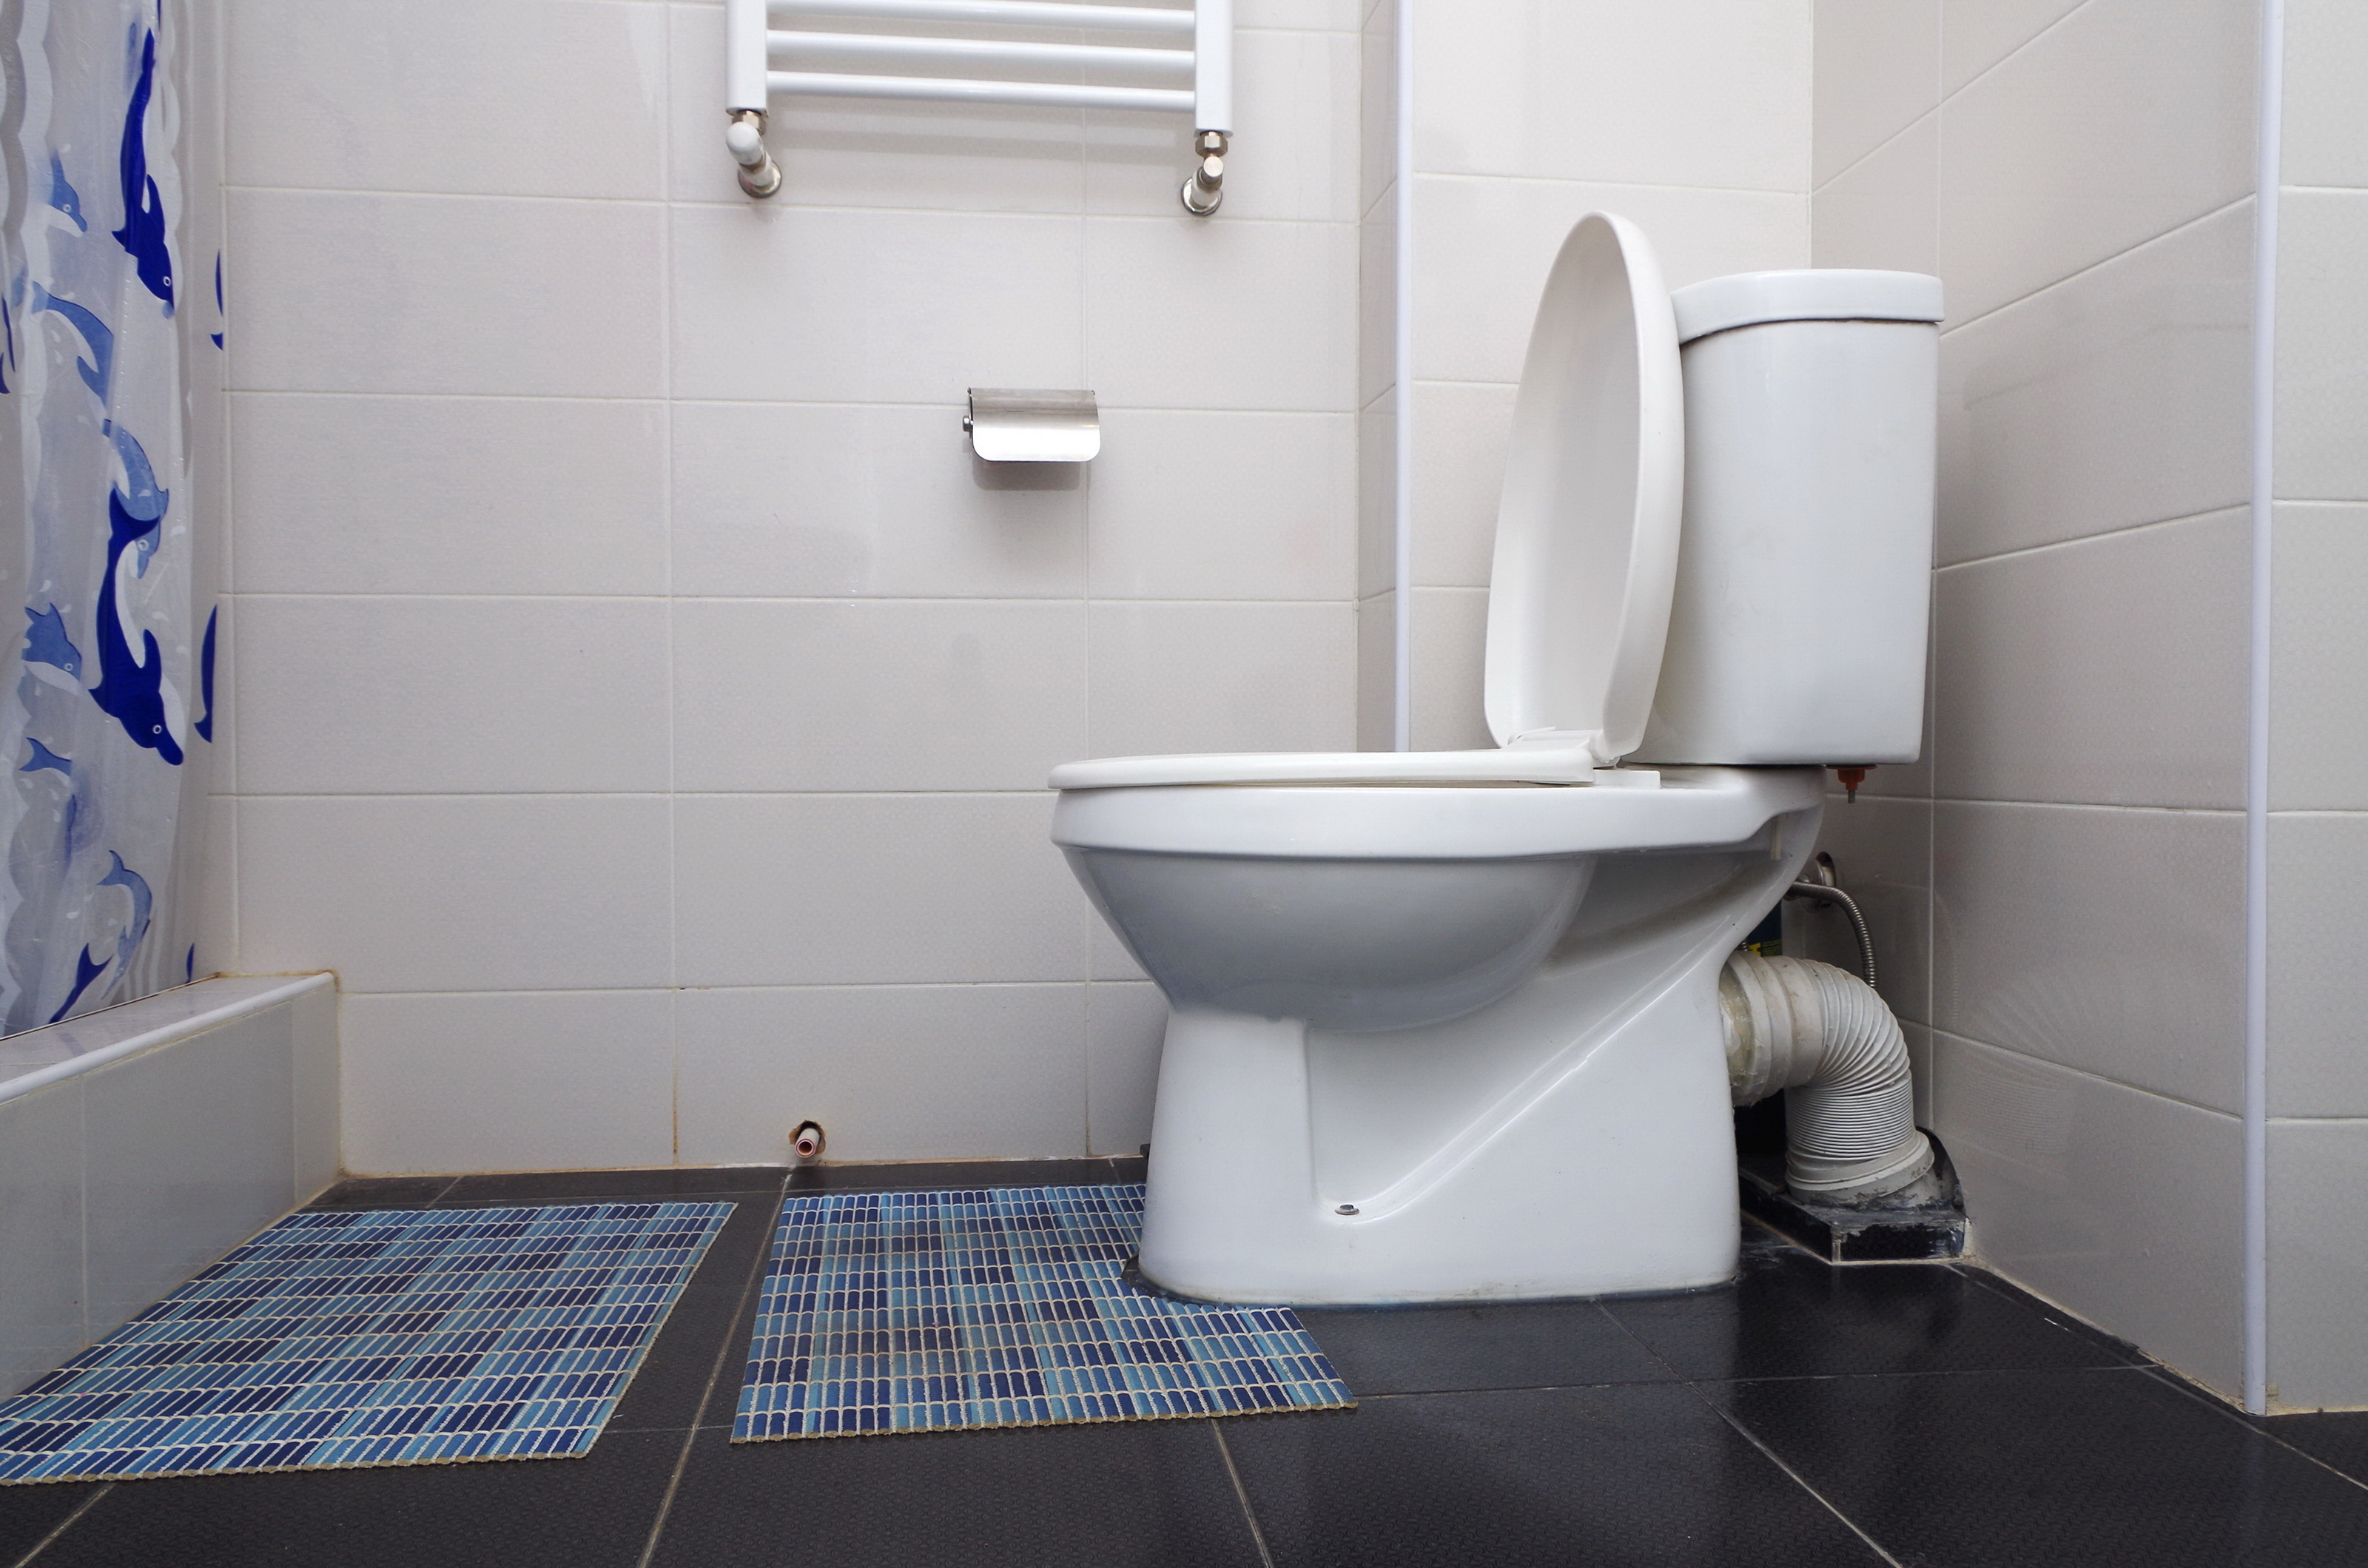 What Is The Minimum Amount Of Space Needed For A Toilet